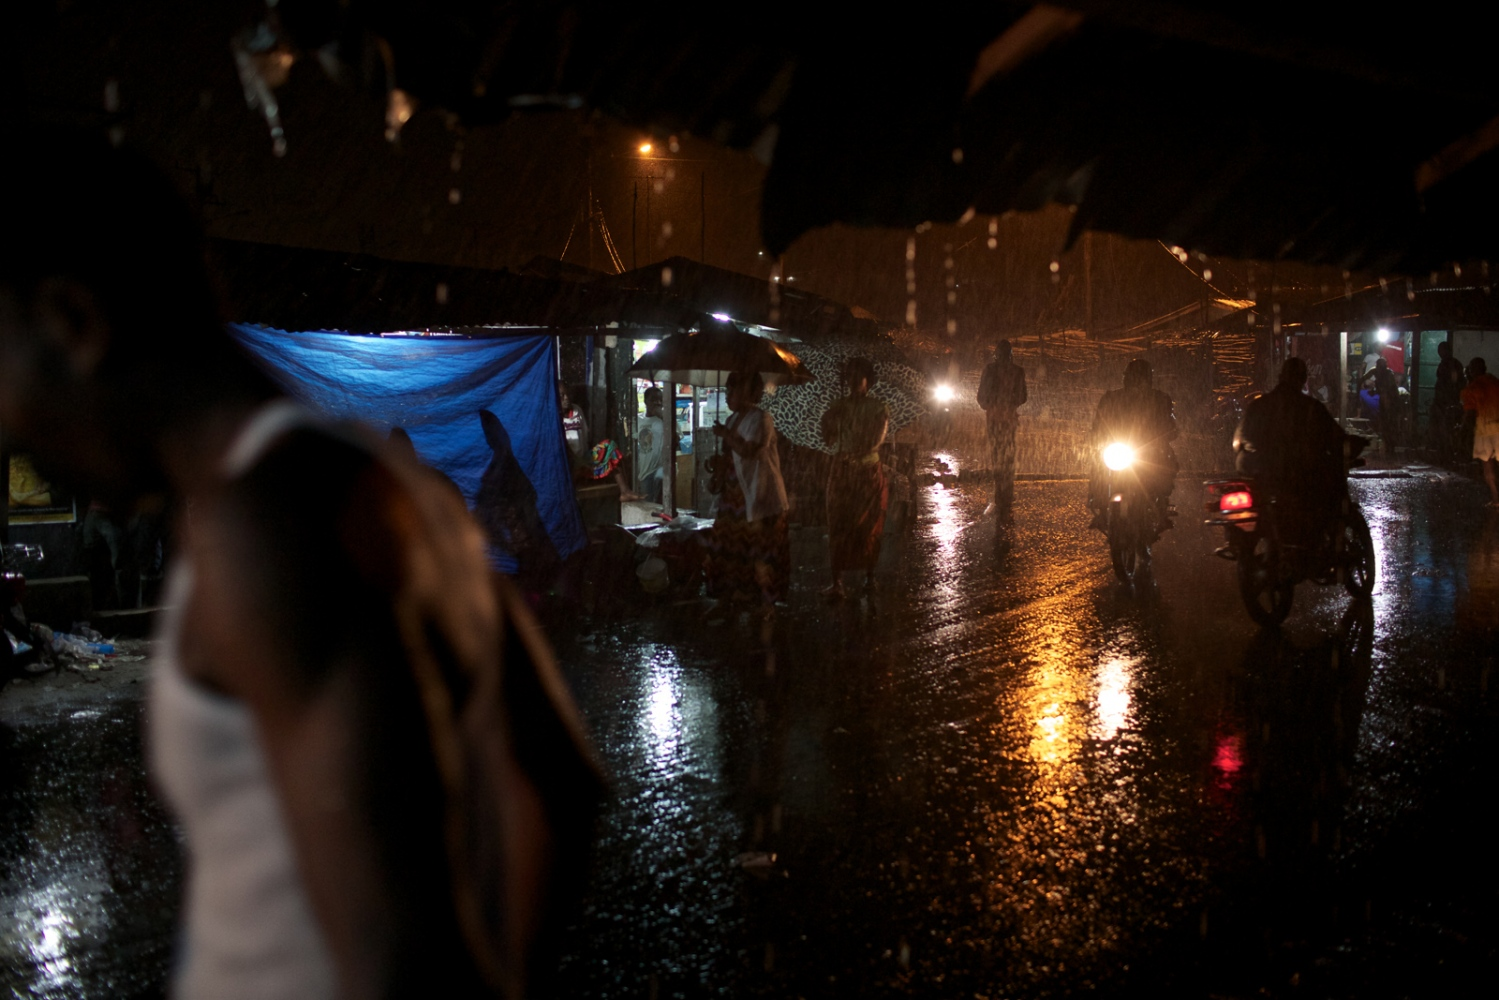 West Point, Monrovia, Liberia. August 2013.  Another rainy night in the West Point township.